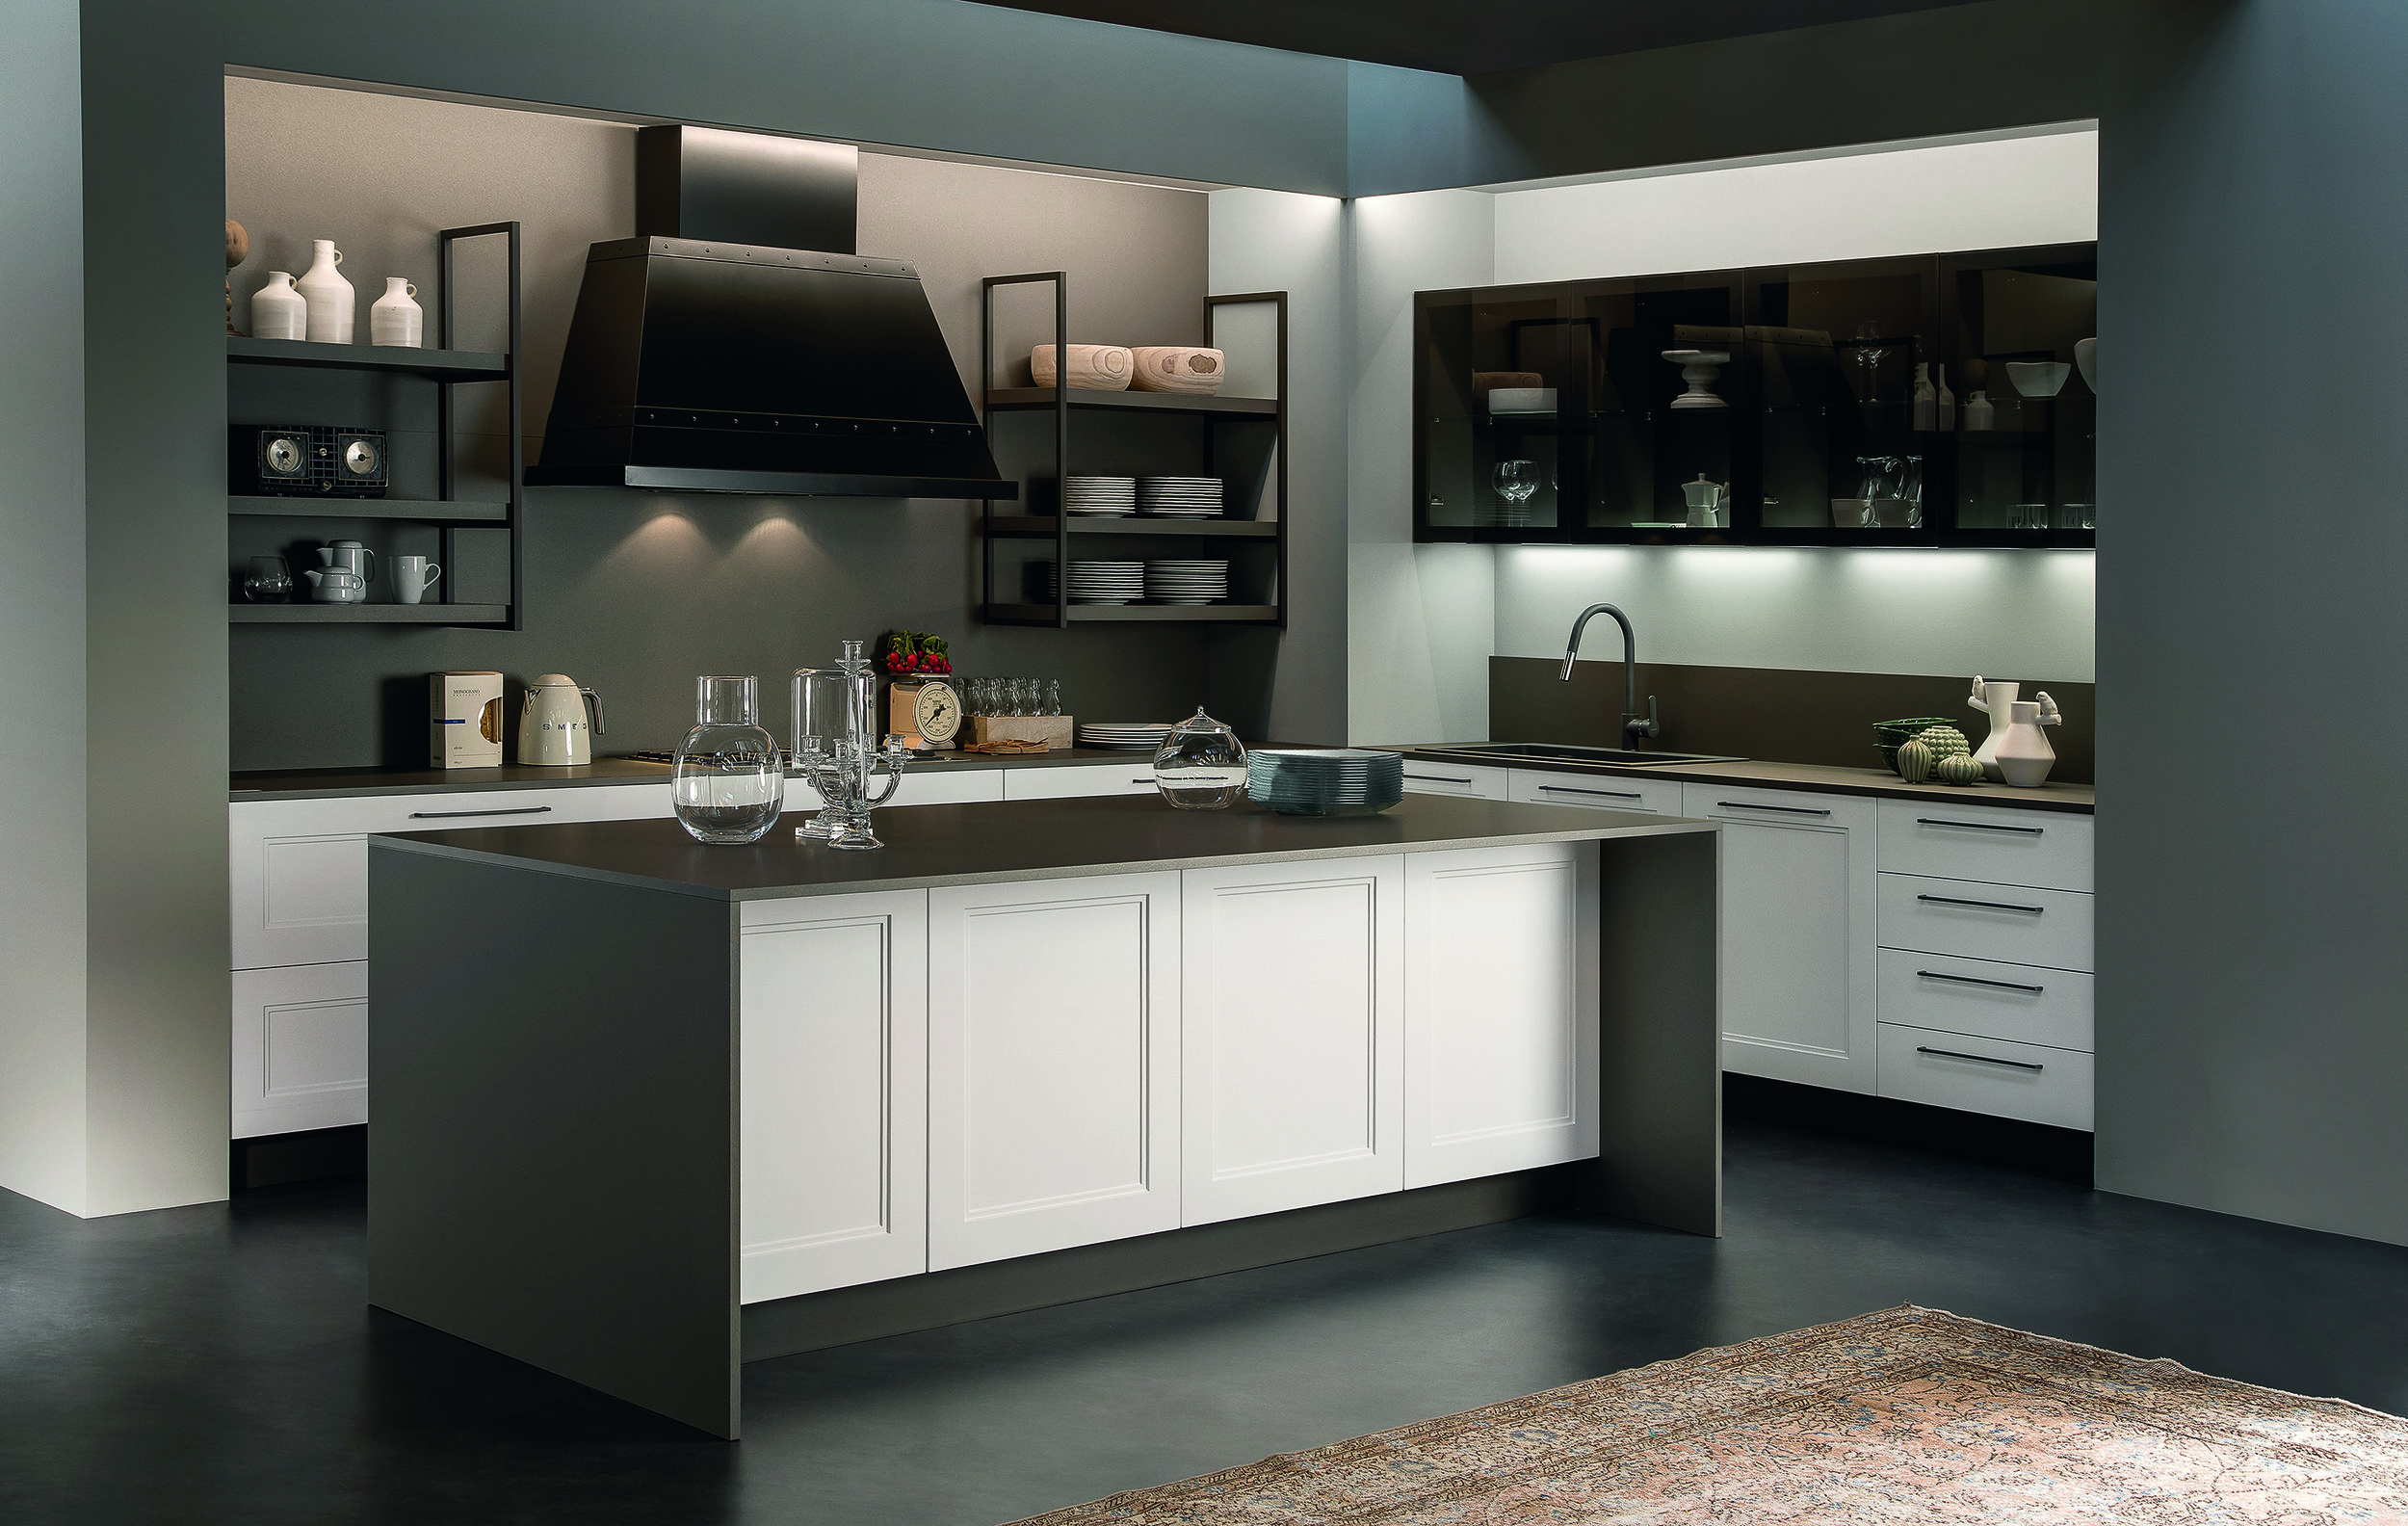 functionality meets beauty in a meg kitchen…